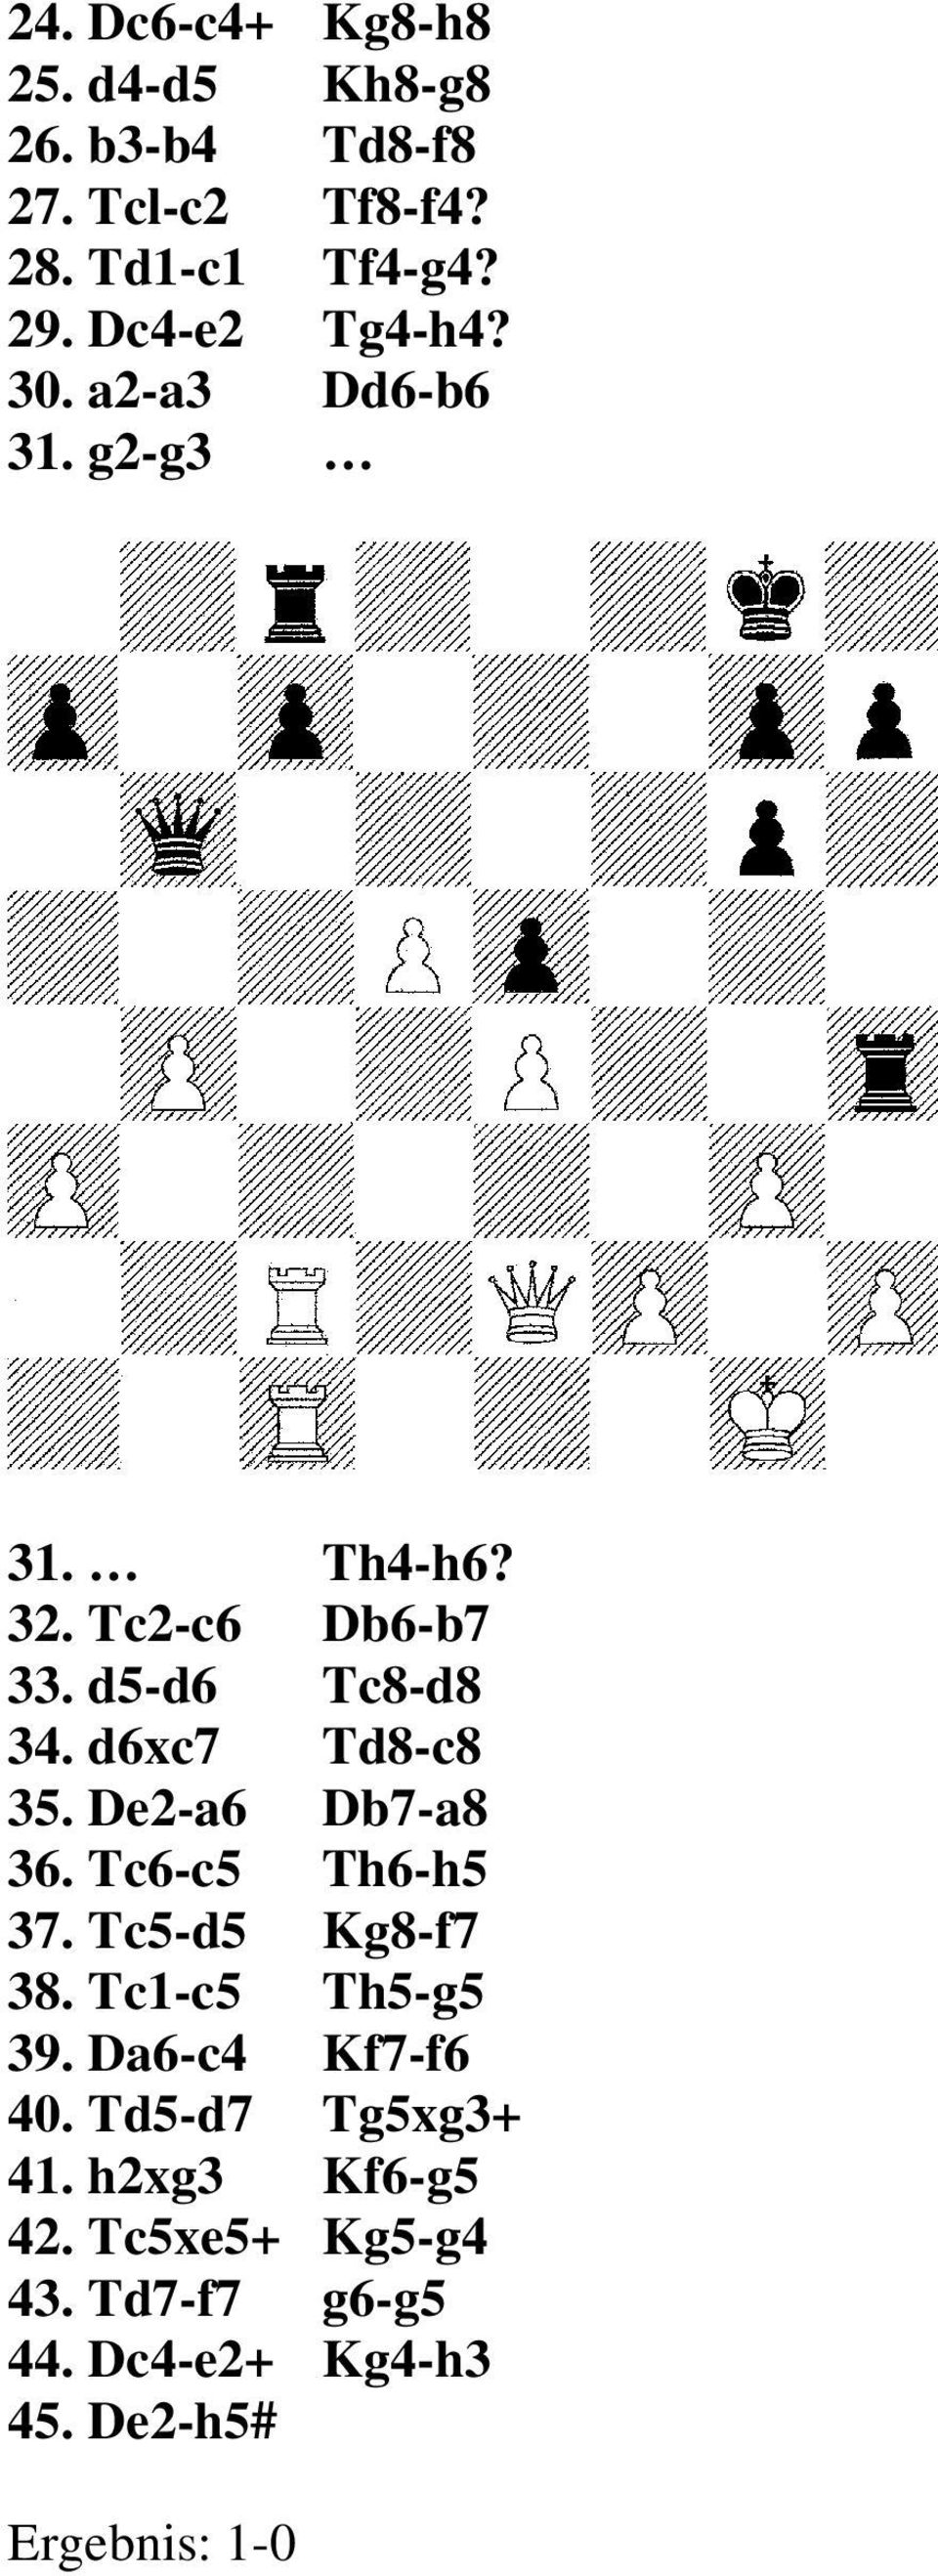 d6xc7 Td8-c8 35. De2-a6 Db7-a8 36. Tc6-c5 Th6-h5 37. Tc5-d5 Kg8-f7 38. Tc1-c5 Th5-g5 39.